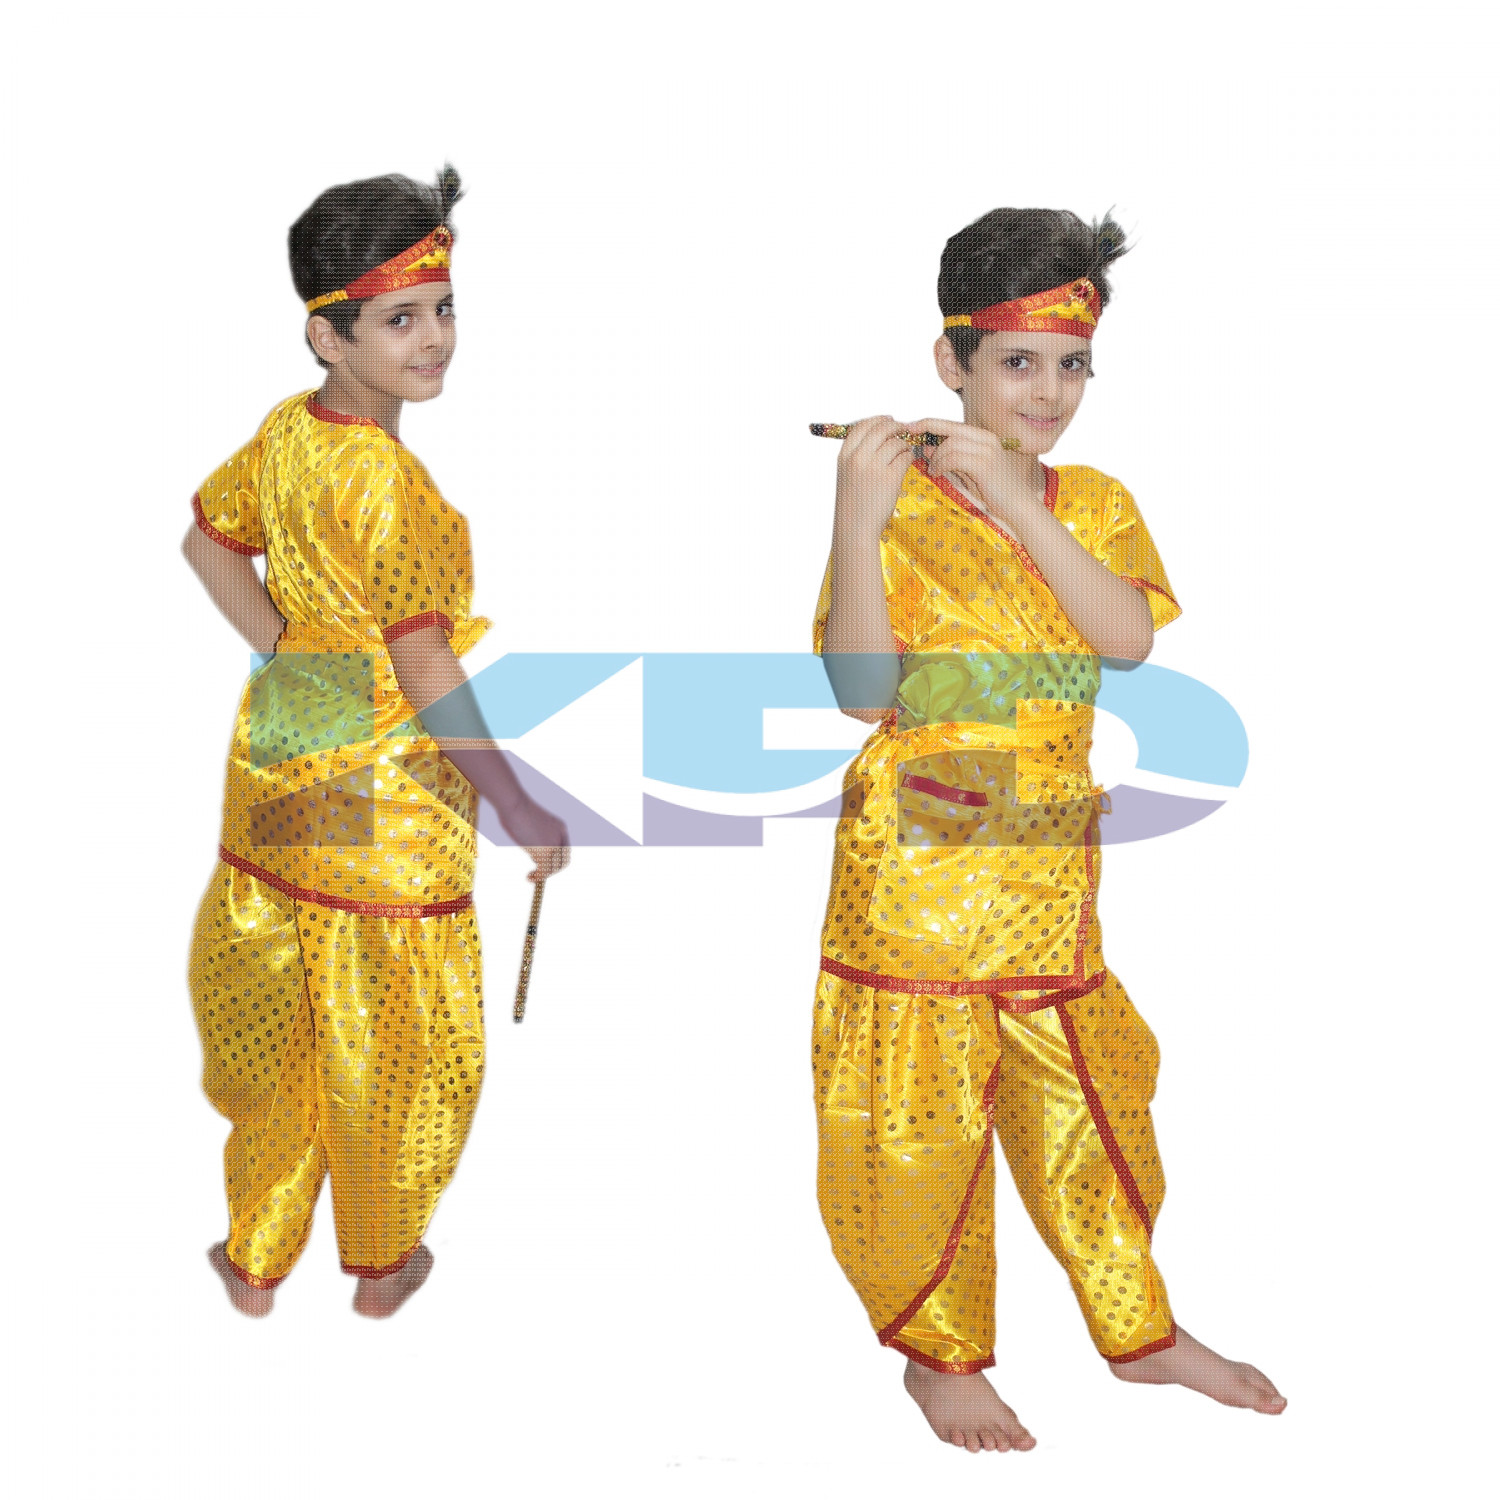 Krishna Dotted fancy dress for kids,Krishnaleela/Janmashtami/Kanha/Mythological Character for Annual functionTtheme Party/Competition/Stage Shows Dress